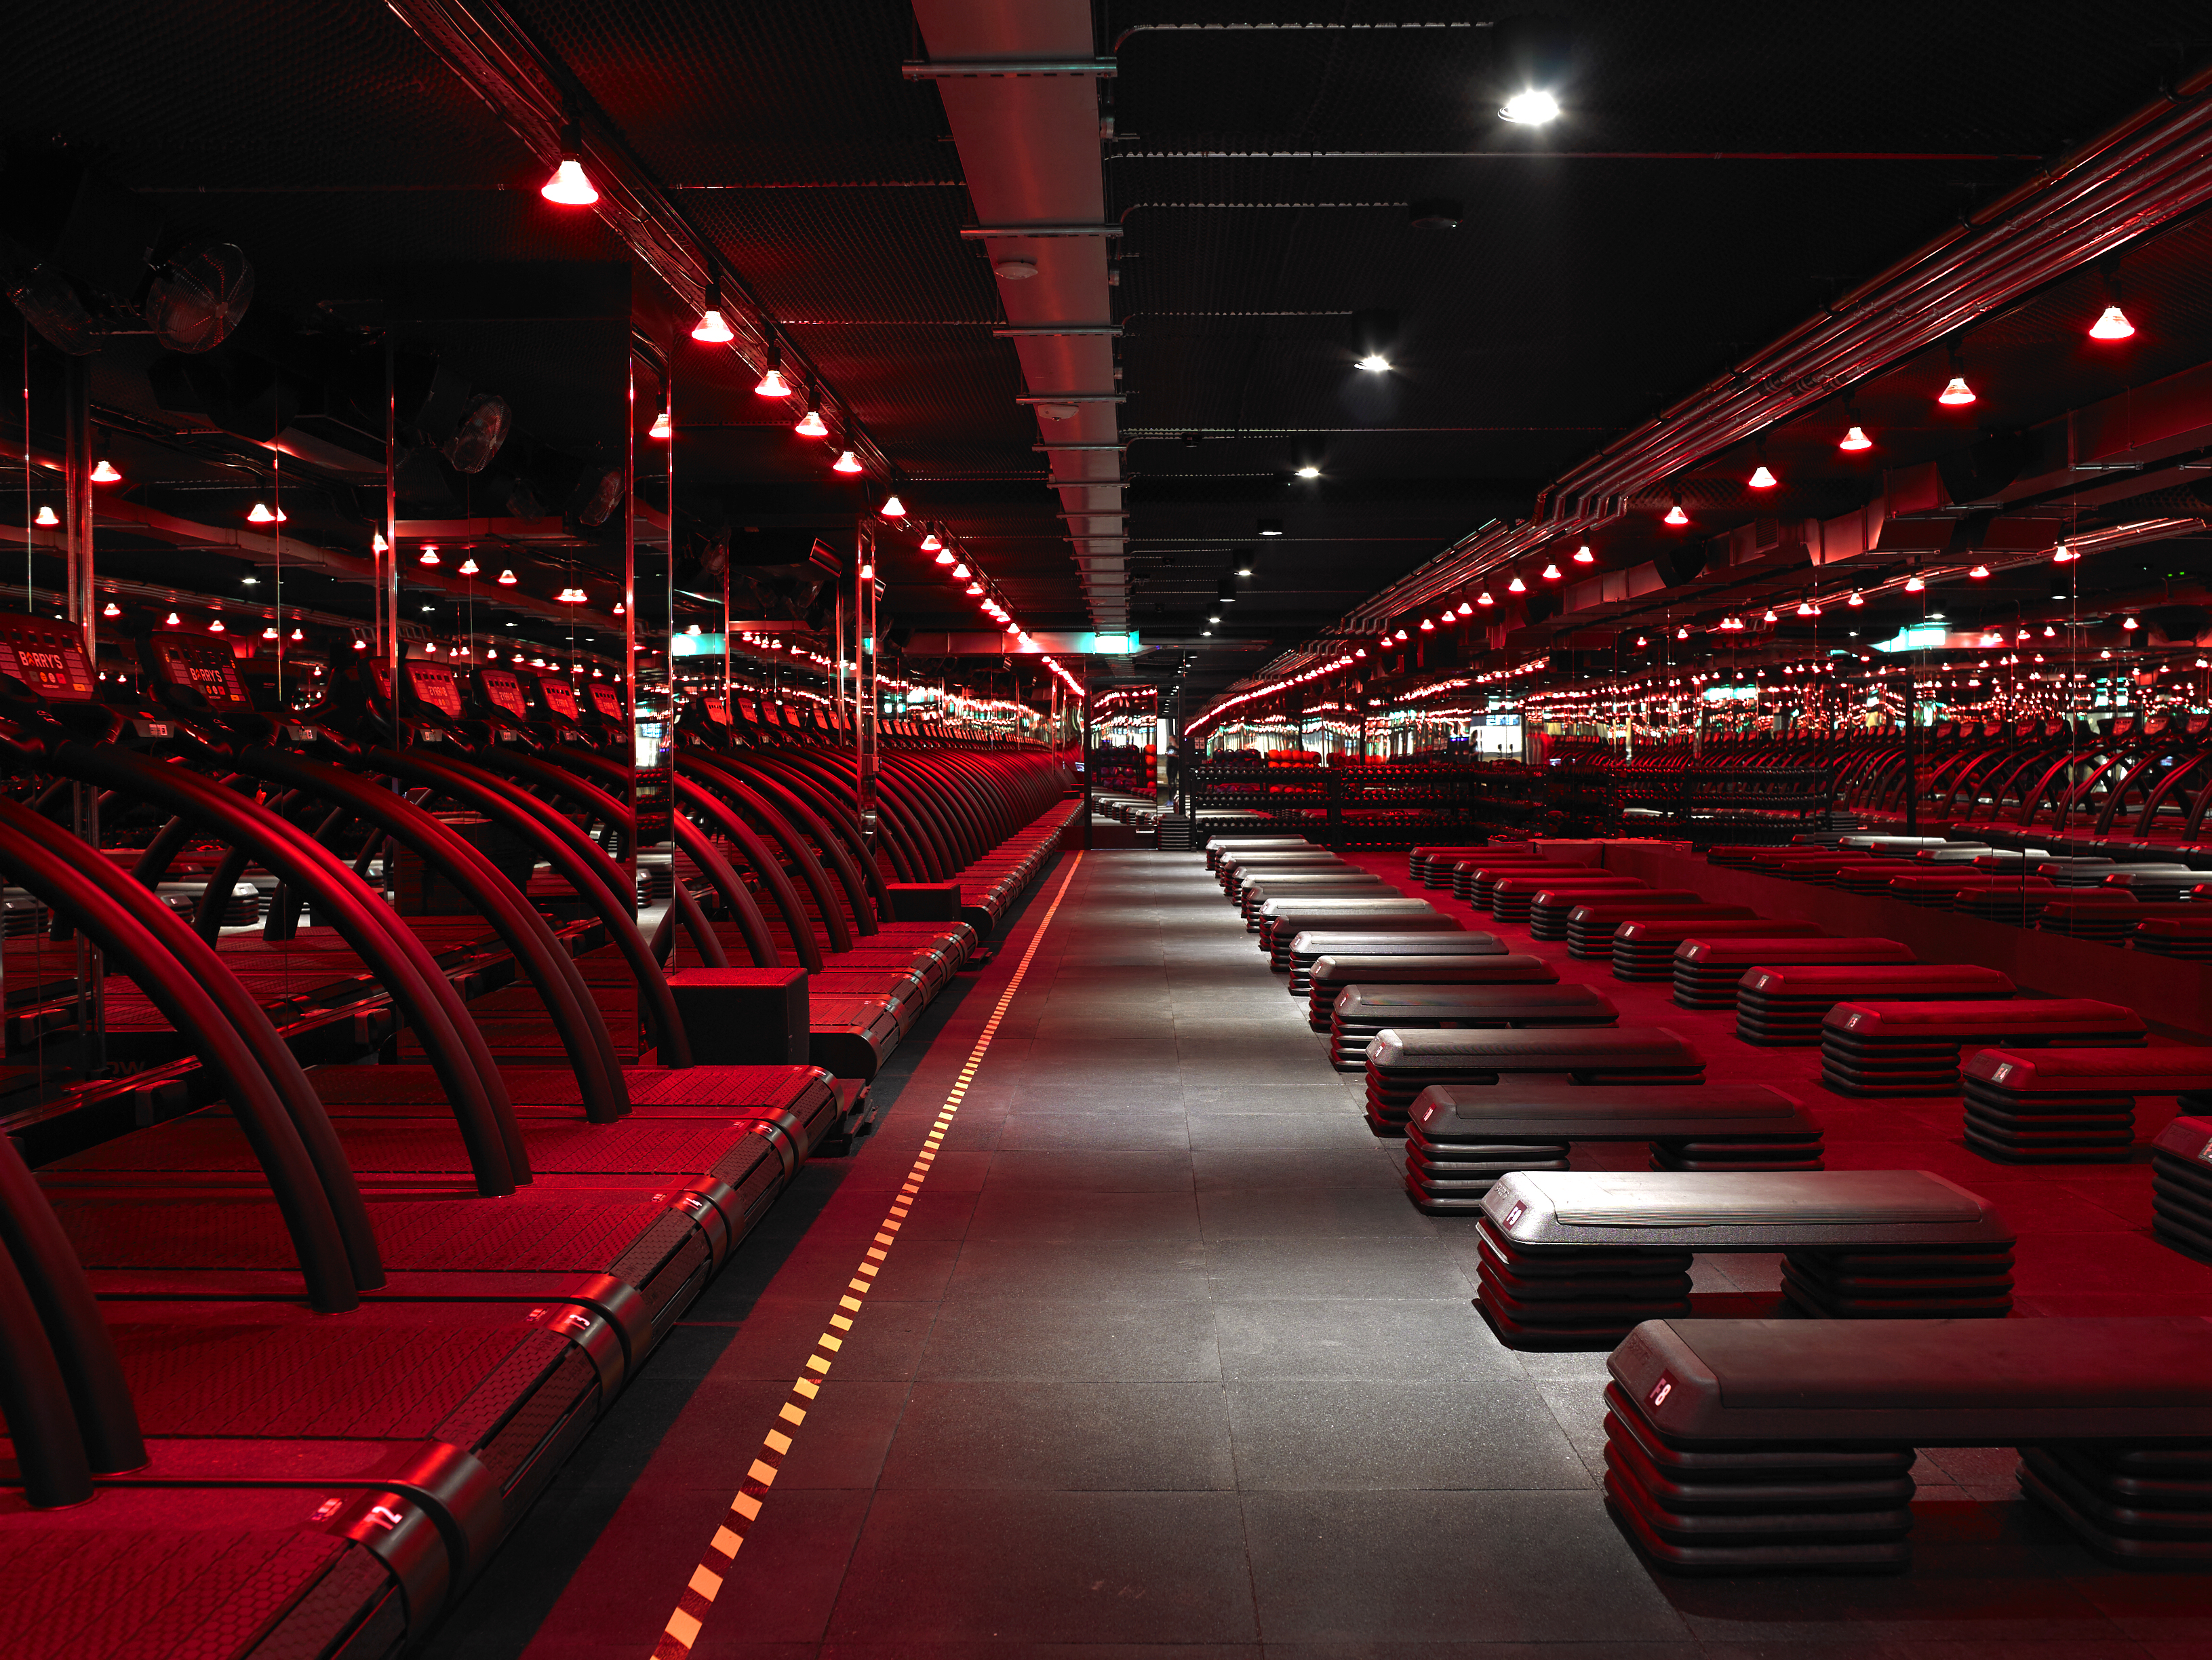 The red room of pain AKA Barry's Bootcamp